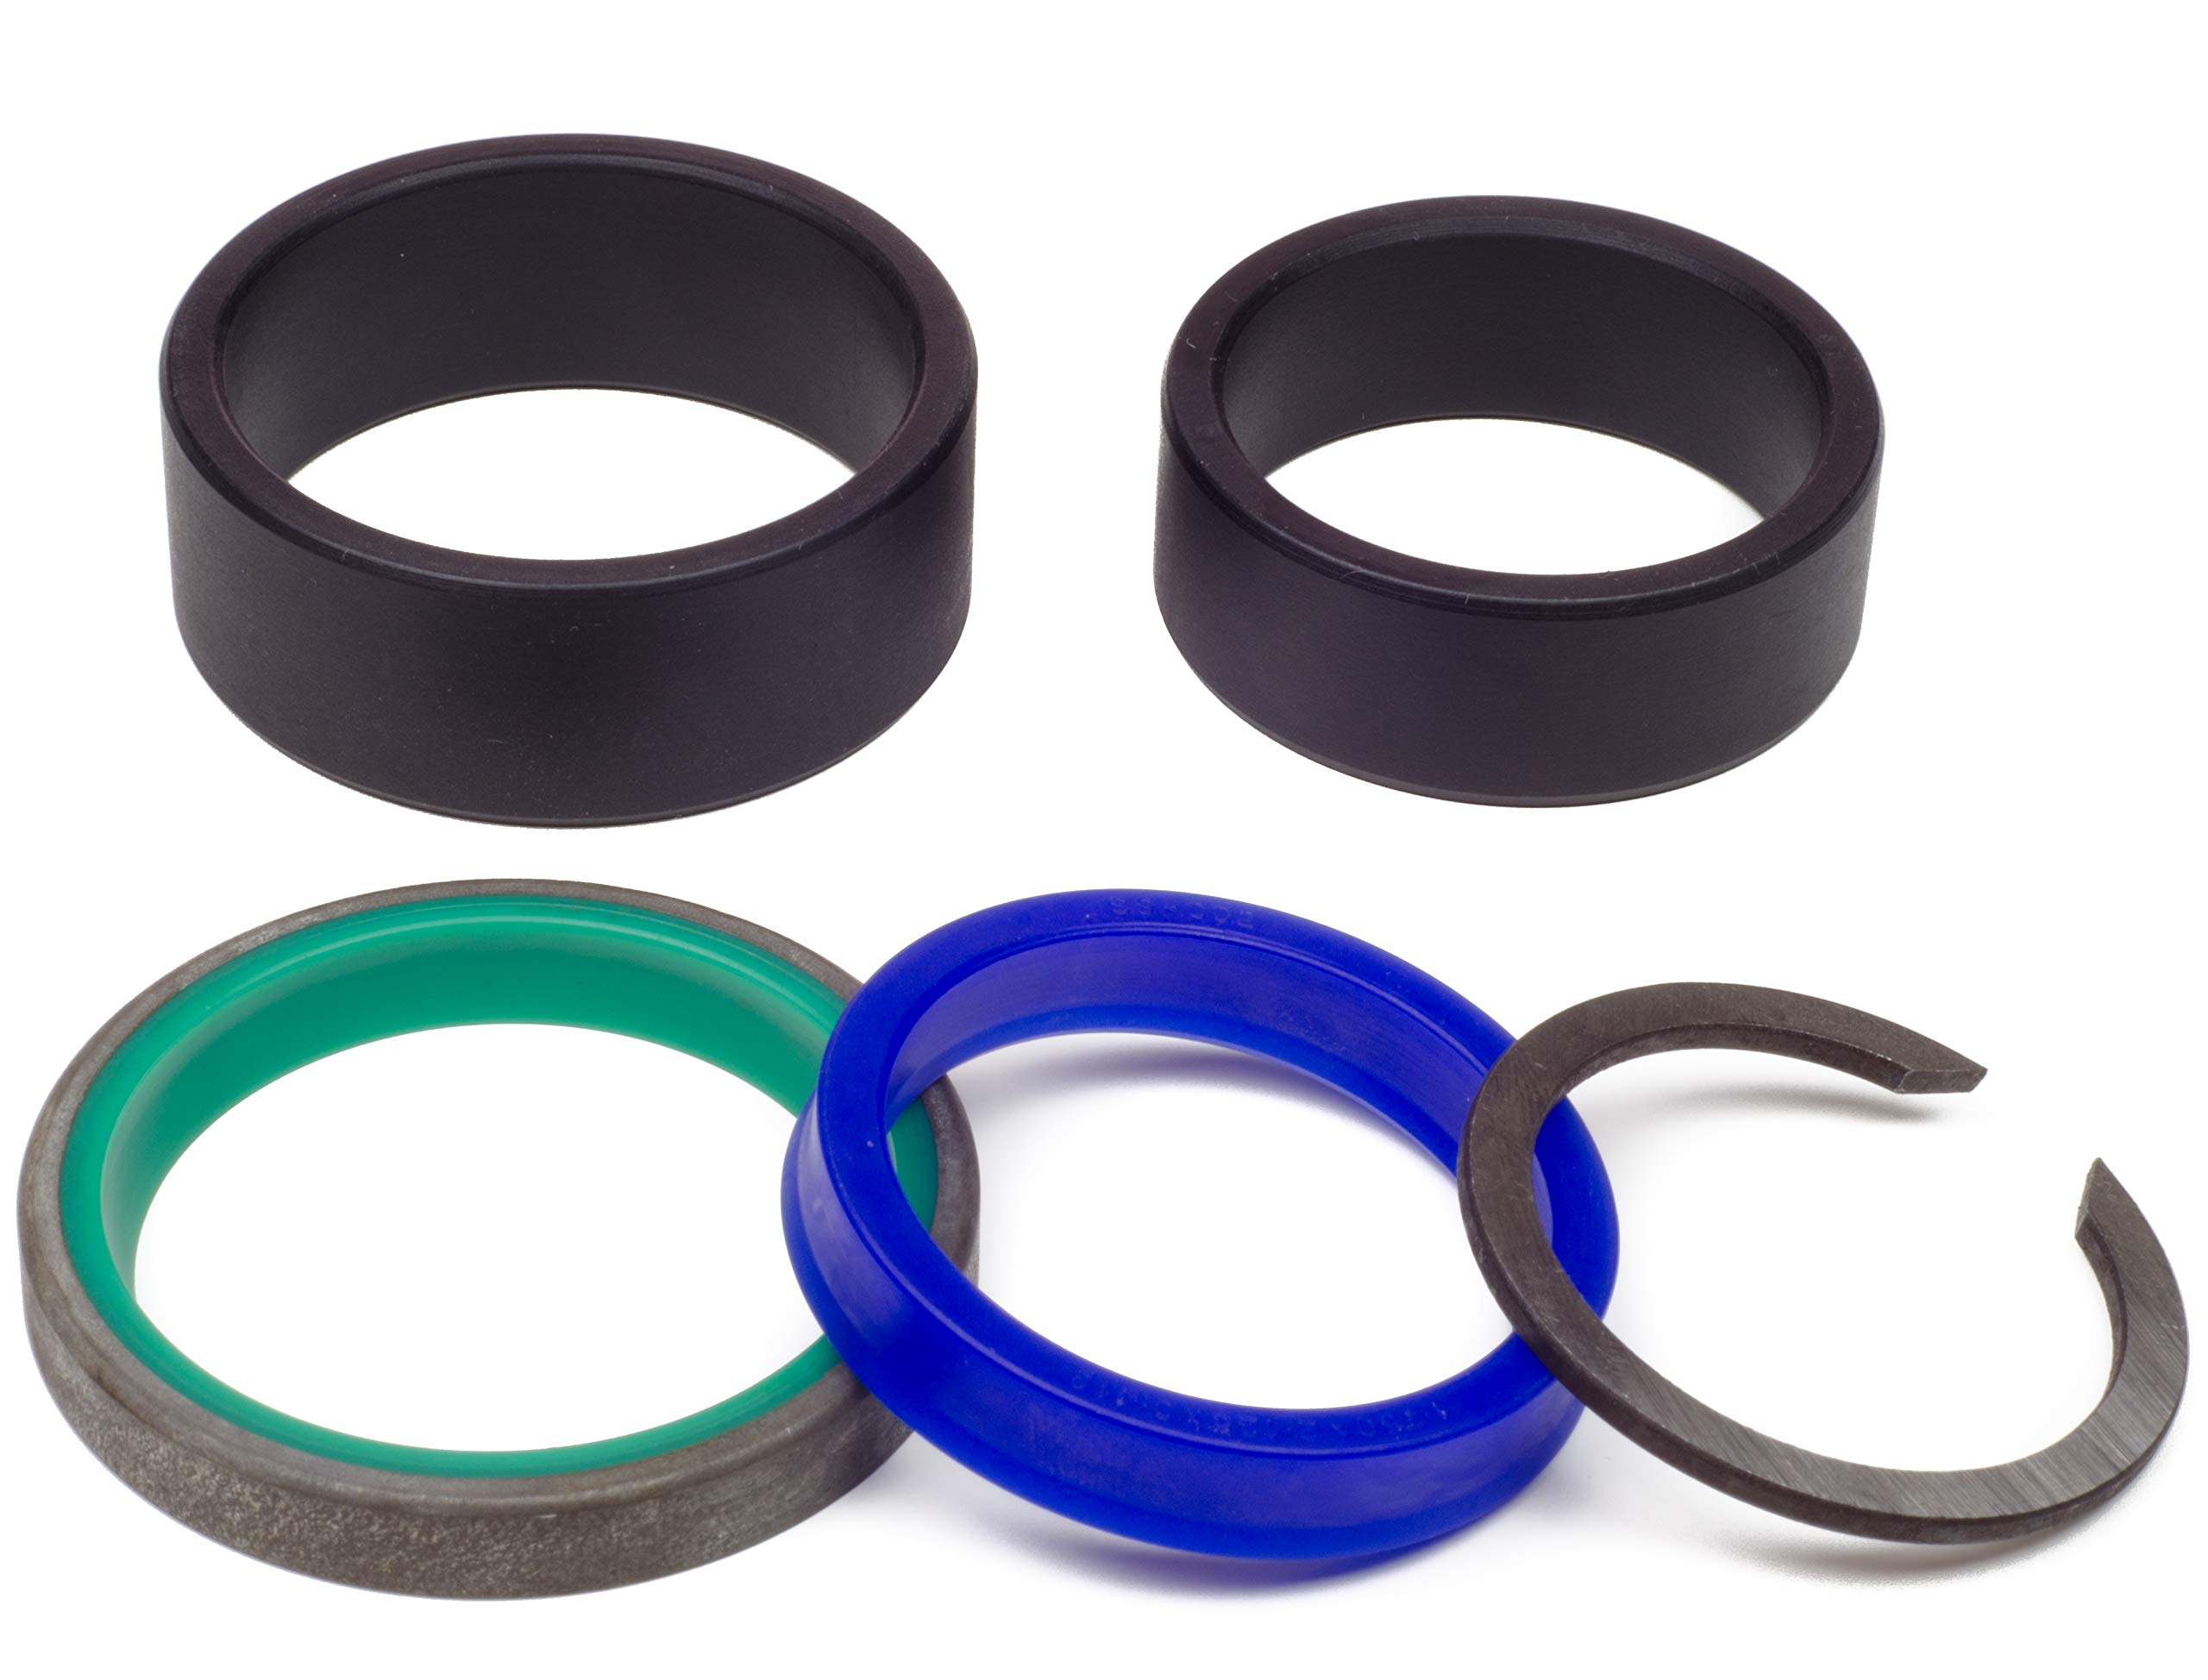 Kit King - Case 907002 Aftermarket Track Adjuster Seal Kit, Hydraulic Cylinder, CS-BD-907002, 450 455 550 650 & More by Kit King USA (Image #1)